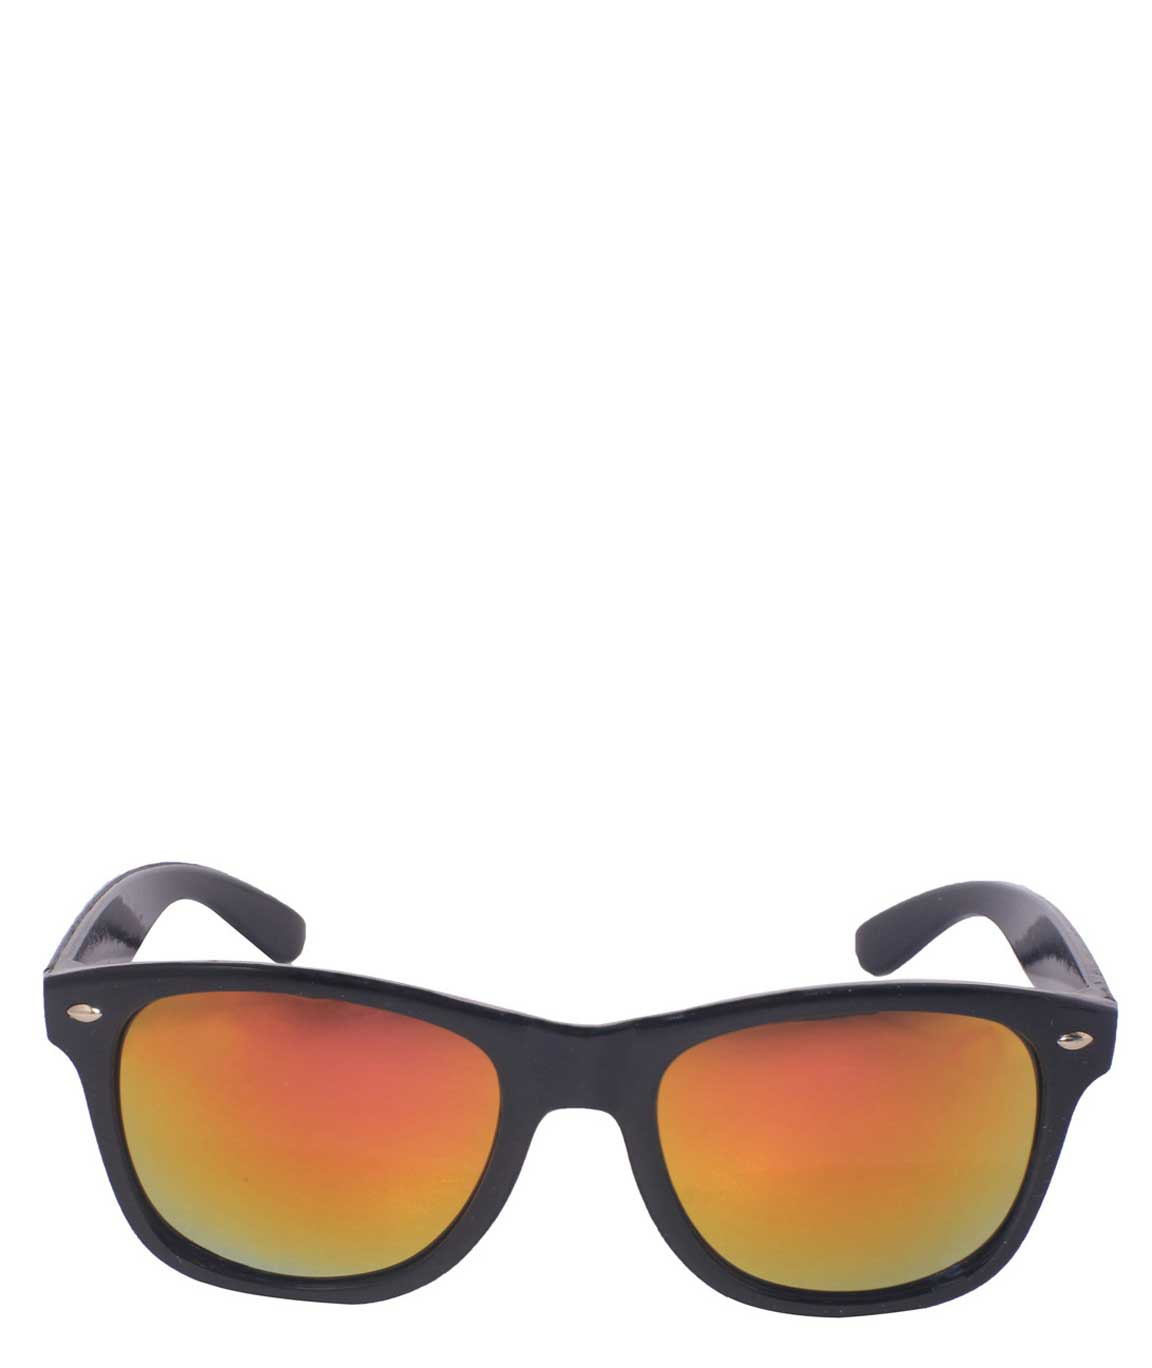 YELLOW ORANGE WAYFARER